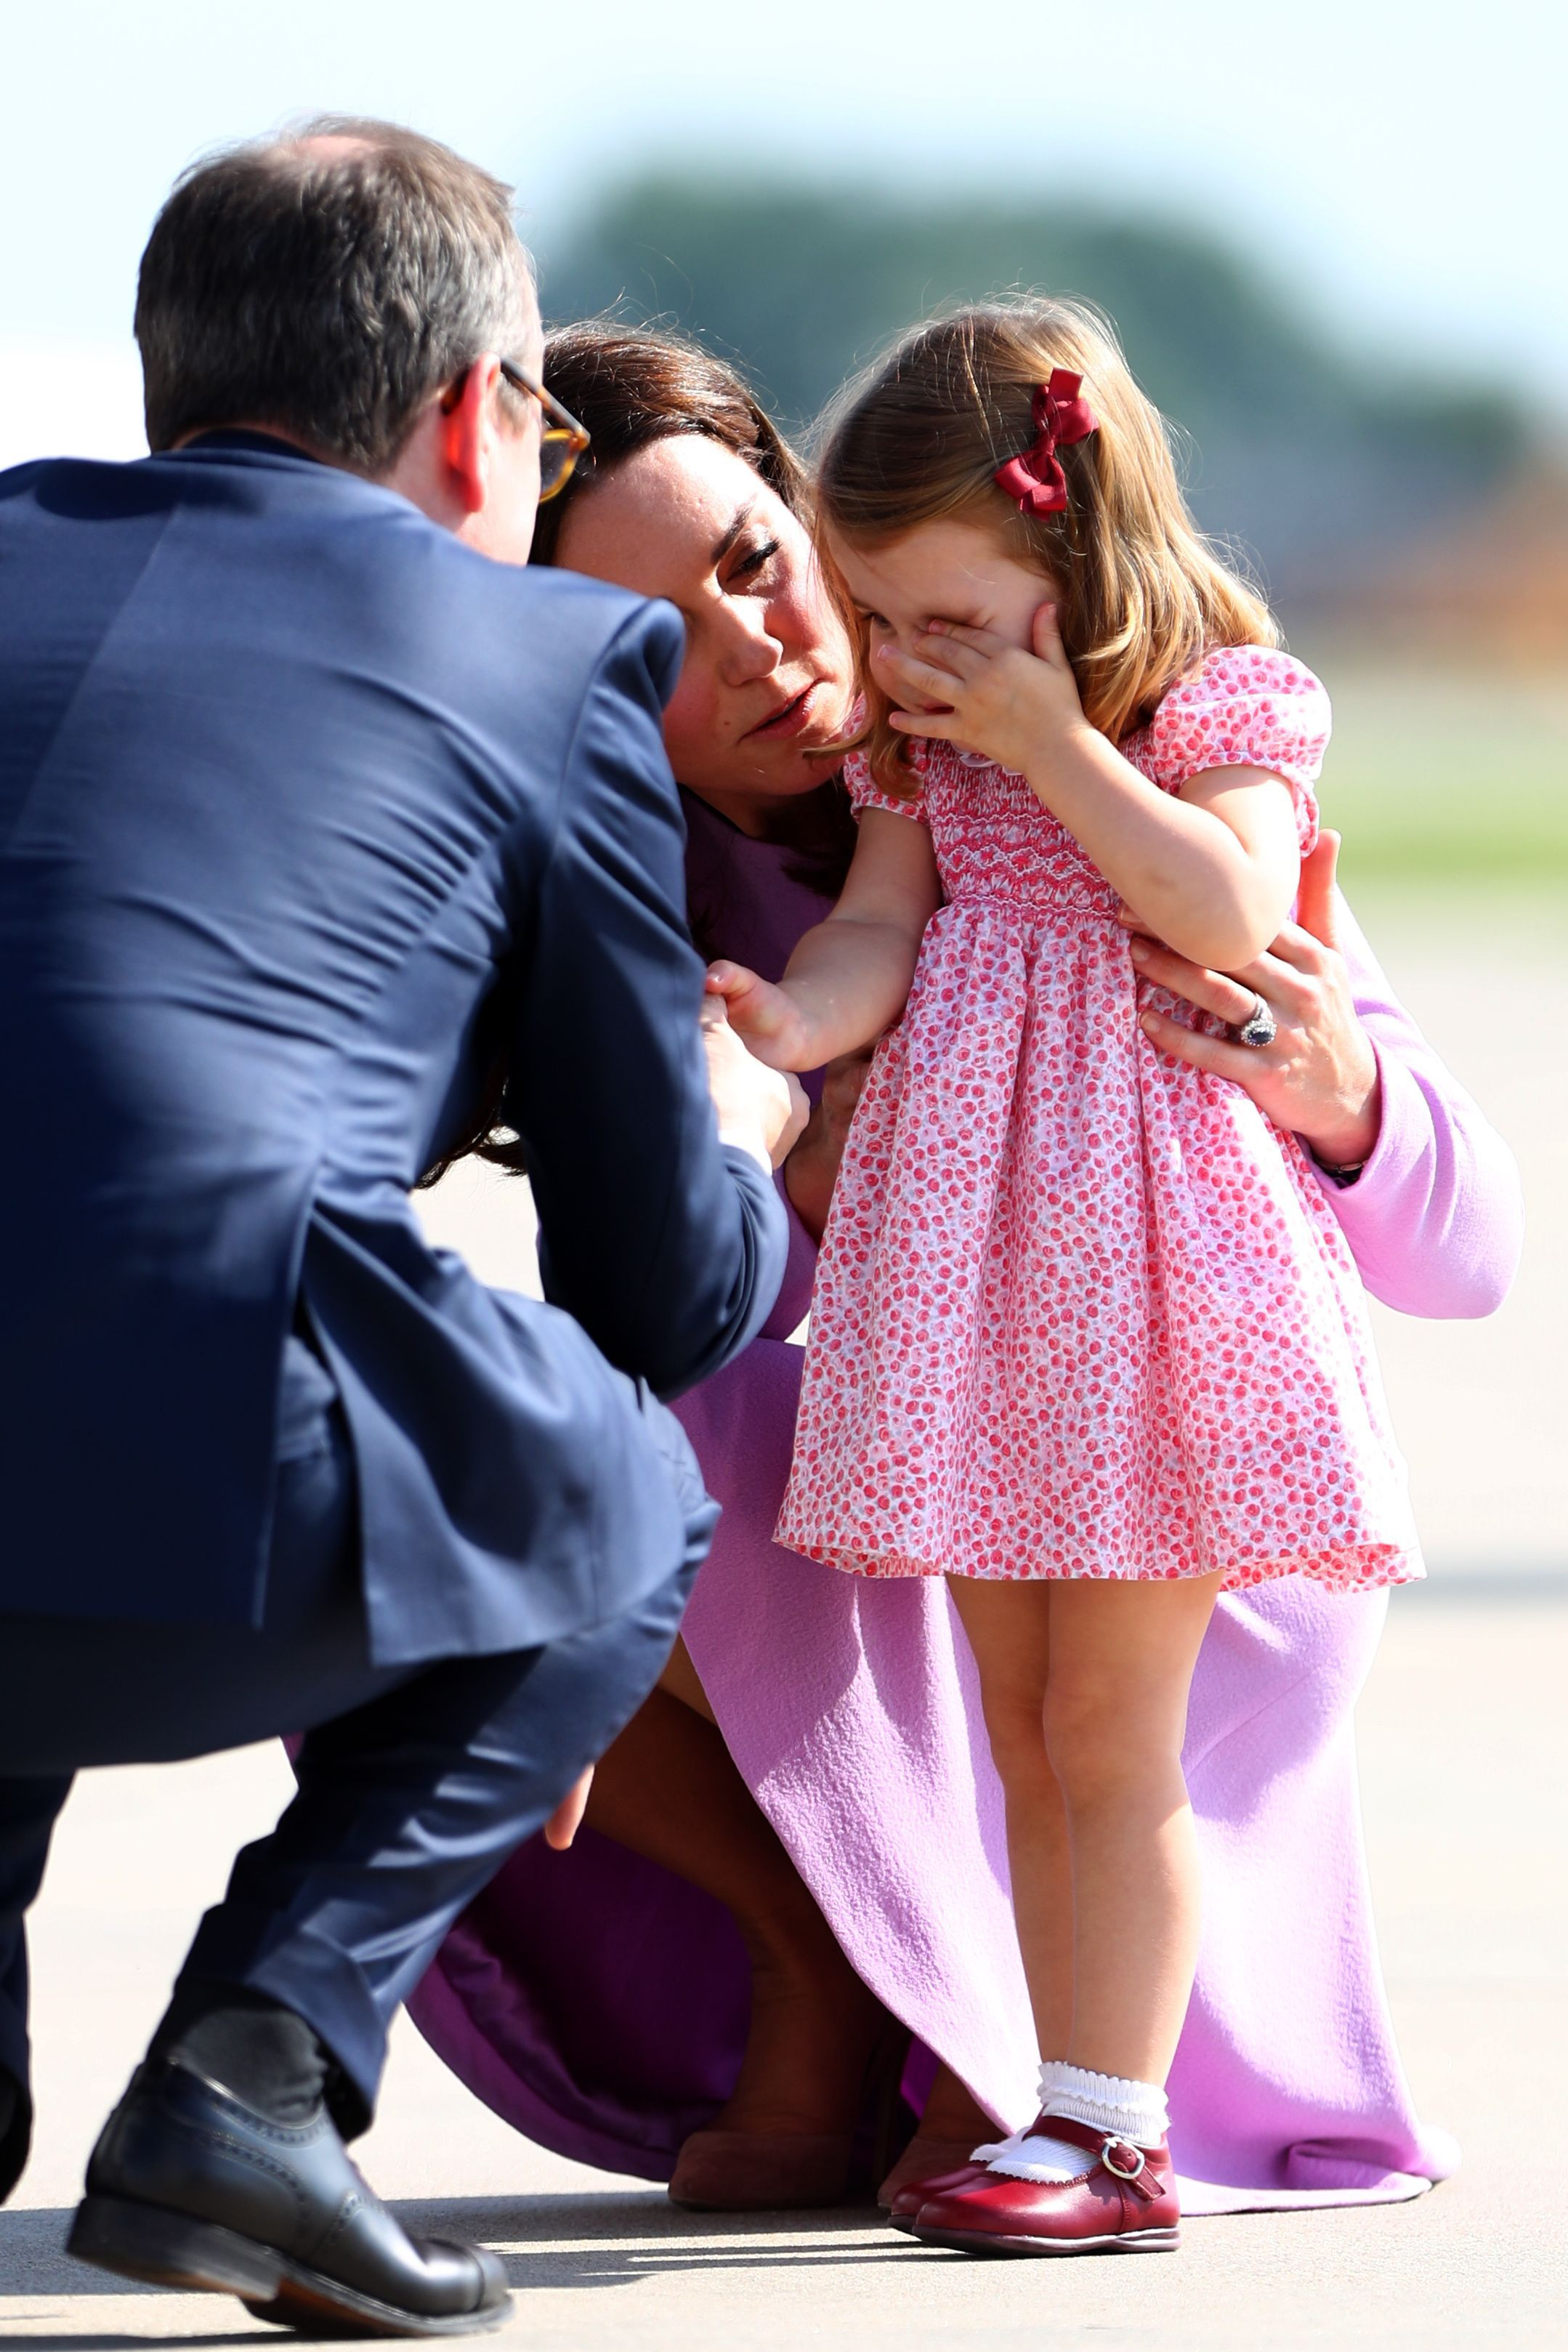 25 Candid Photos of the Duchess of Cambridge - Funny Pictures of ...